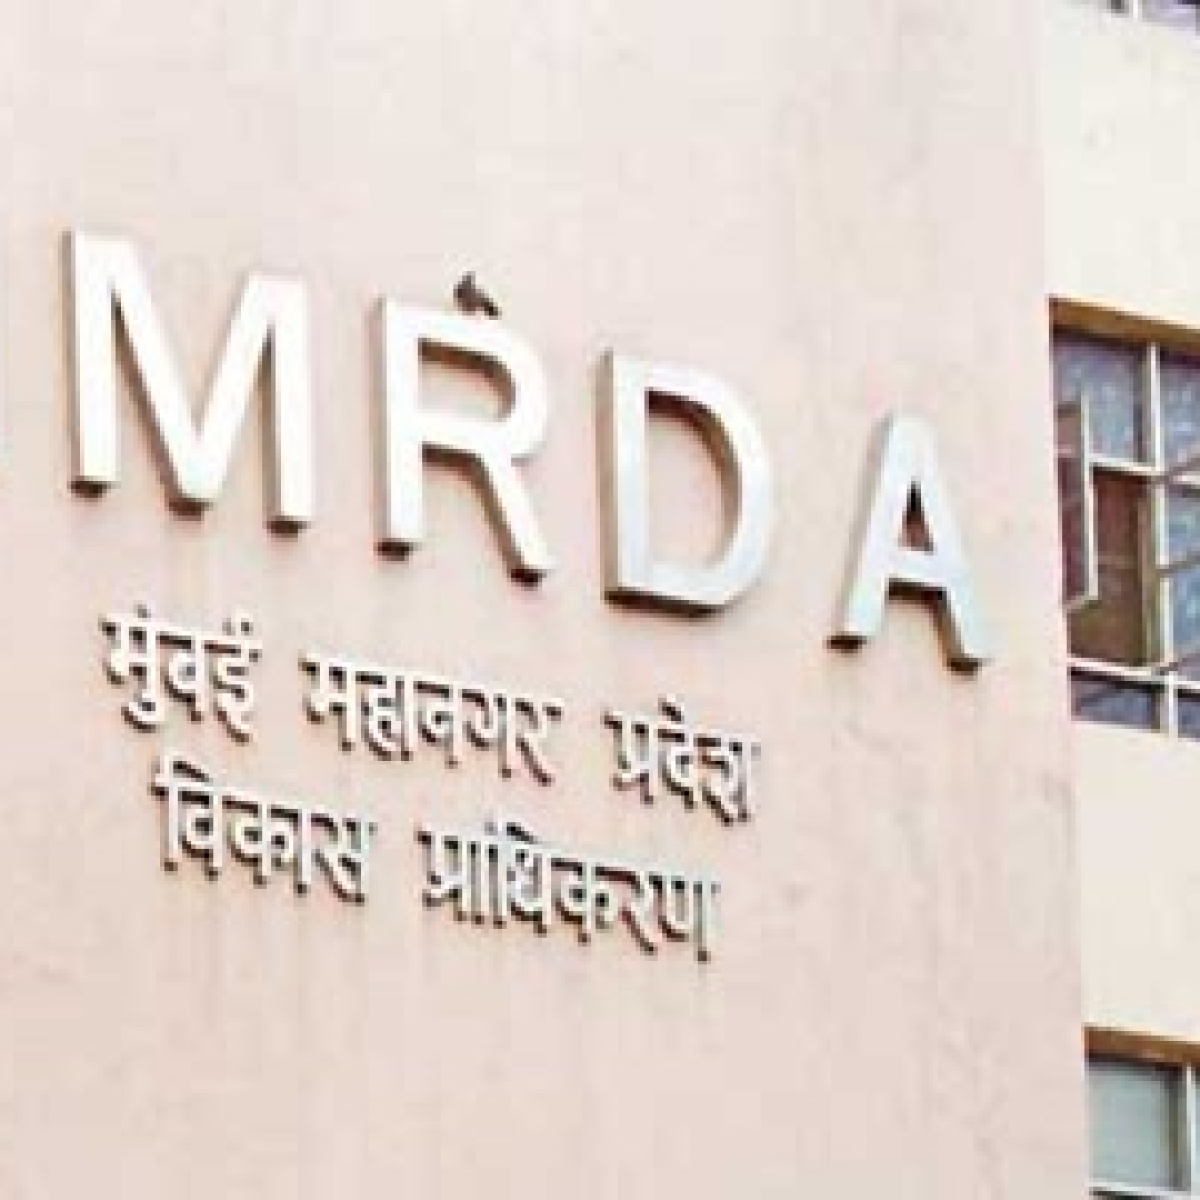 33 applicants per MMRDA vacancy so far and counting; 75,000 likely to apply by October 5 deadline